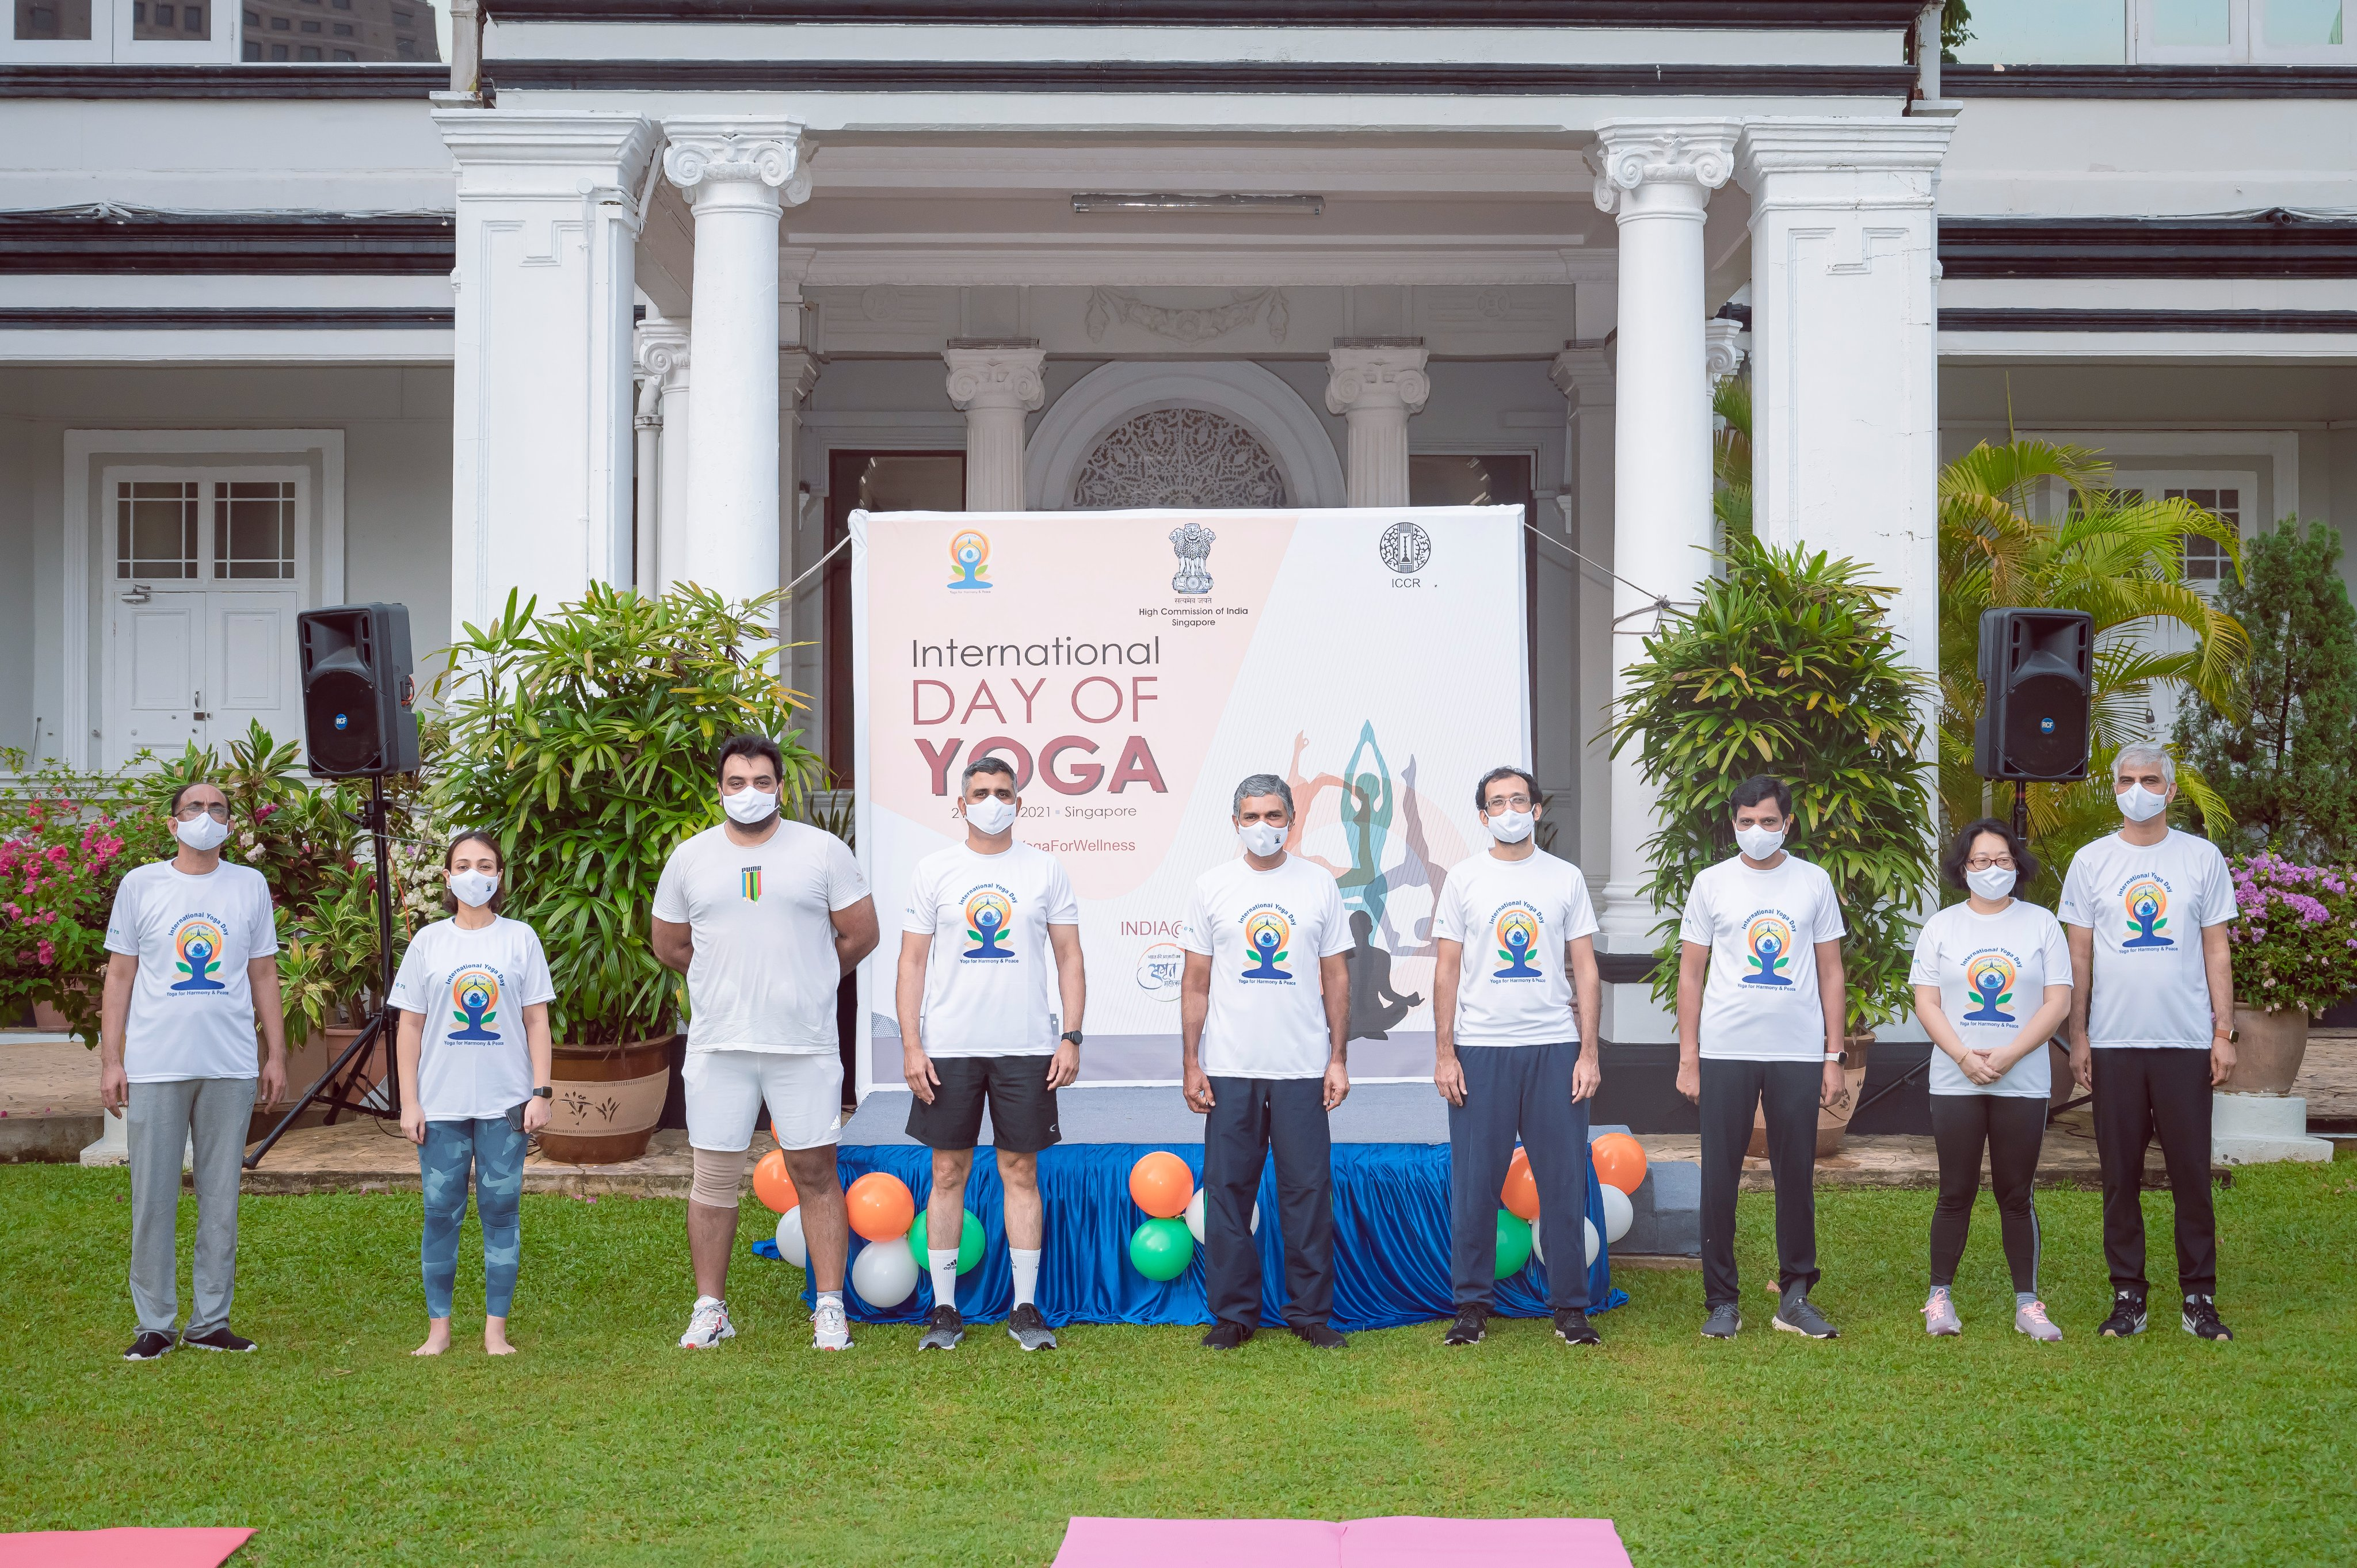 High Commissioner P Kumaran said that there were 56 yoga instructors, studios, organisations and community centres who took part in the sessions.